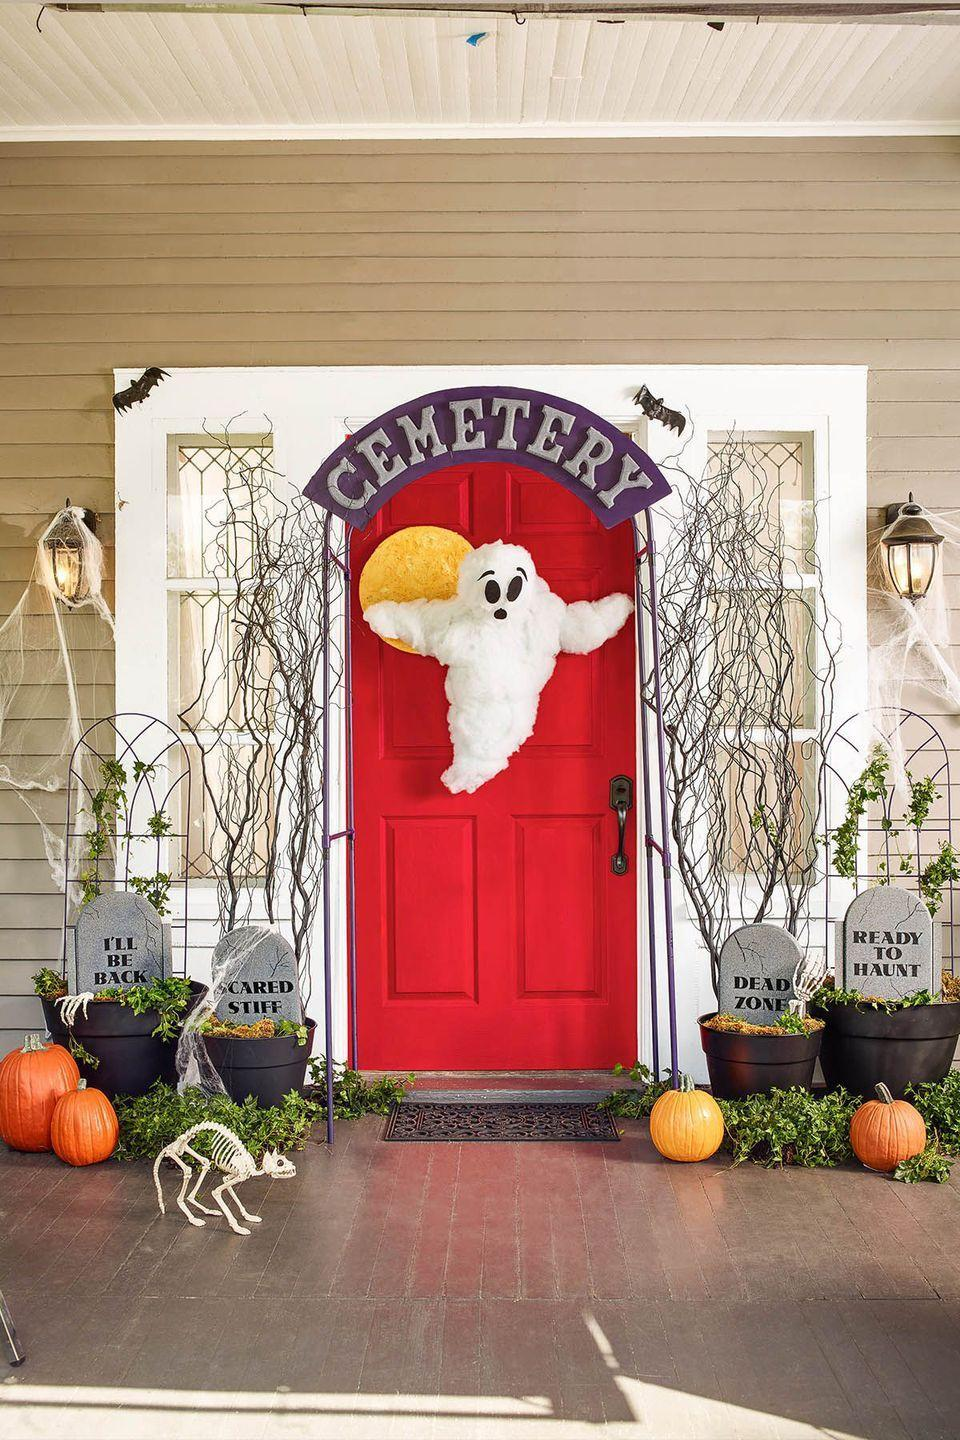 """<p>This creepy ghost will warn trick-or-treaters and party goers to beware before entering your decked out house.</p><p><em><a href=""""https://www.womansday.com/home/crafts-projects/g2488/simple-halloween-crafts/?slide=12"""" rel=""""nofollow noopener"""" target=""""_blank"""" data-ylk=""""slk:Get the Friendly Front Door Ghost tutorial."""" class=""""link rapid-noclick-resp"""">Get the Friendly Front Door Ghost tutorial. </a></em></p><p><strong>What You'll Need: </strong><a href=""""https://www.amazon.com/Prextex-Skeleton-Best-Halloween-Decoration/dp/B01F2LXL2K?tag=womansday_auto-append-20&ascsubtag=[artid 10070.g.2488[src [ch [lt """" rel=""""nofollow noopener"""" target=""""_blank"""" data-ylk=""""slk:Skeleton cat"""" class=""""link rapid-noclick-resp"""">Skeleton cat</a> ($23, Amazon); <a href=""""https://www.amazon.com/Pair-Halloween-Skeleton-Tongs-Servers/dp/B015KYLMQ6?tag=womansday_auto-append-20&ascsubtag=[artid 10070.g.2488[src [ch [lt """" rel=""""nofollow noopener"""" target=""""_blank"""" data-ylk=""""slk:skeleton arms"""" class=""""link rapid-noclick-resp"""">skeleton arms</a> ($8, Amazon); <a href=""""https://www.amazon.com/Halloween-Realistic-Looking-Hanging-Decoration/dp/B071FQ3QNK?tag=womansday_auto-append-20&ascsubtag=[artid 10070.g.2488[src [ch [lt """" rel=""""nofollow noopener"""" target=""""_blank"""" data-ylk=""""slk:rubber bats"""" class=""""link rapid-noclick-resp"""">rubber bats</a> (10 for $10, Amazon); <a href=""""https://www.amazon.com/Acrylic-Paint-Value-Craft-Smart/dp/B00OQIEDYQ/ref=sr_1_8?dchild=1&keywords=colored+paint&qid=1595005926&sr=8-8&tag=syn-yahoo-20&ascsubtag=%5Bartid%7C10070.g.1279%5Bsrc%7Cyahoo-us"""" rel=""""nofollow noopener"""" target=""""_blank"""" data-ylk=""""slk:colored paint"""" class=""""link rapid-noclick-resp"""">colored paint</a> ($19, Amazon); <a href=""""https://www.amazon.com/SLanC-Wedding-Outdoor-Lightweight-Decoration/dp/B0895DTRN8/ref=sr_1_6?dchild=1&keywords=metal+garden+arch&qid=1595006048&sr=8-6&tag=syn-yahoo-20&ascsubtag=%5Bartid%7C10070.g.1279%5Bsrc%7Cyahoo-us"""" rel=""""nofollow noopener"""" target=""""_blank"""" data-ylk=""""slk:metal garden arch"""" class=""""link rapid-"""